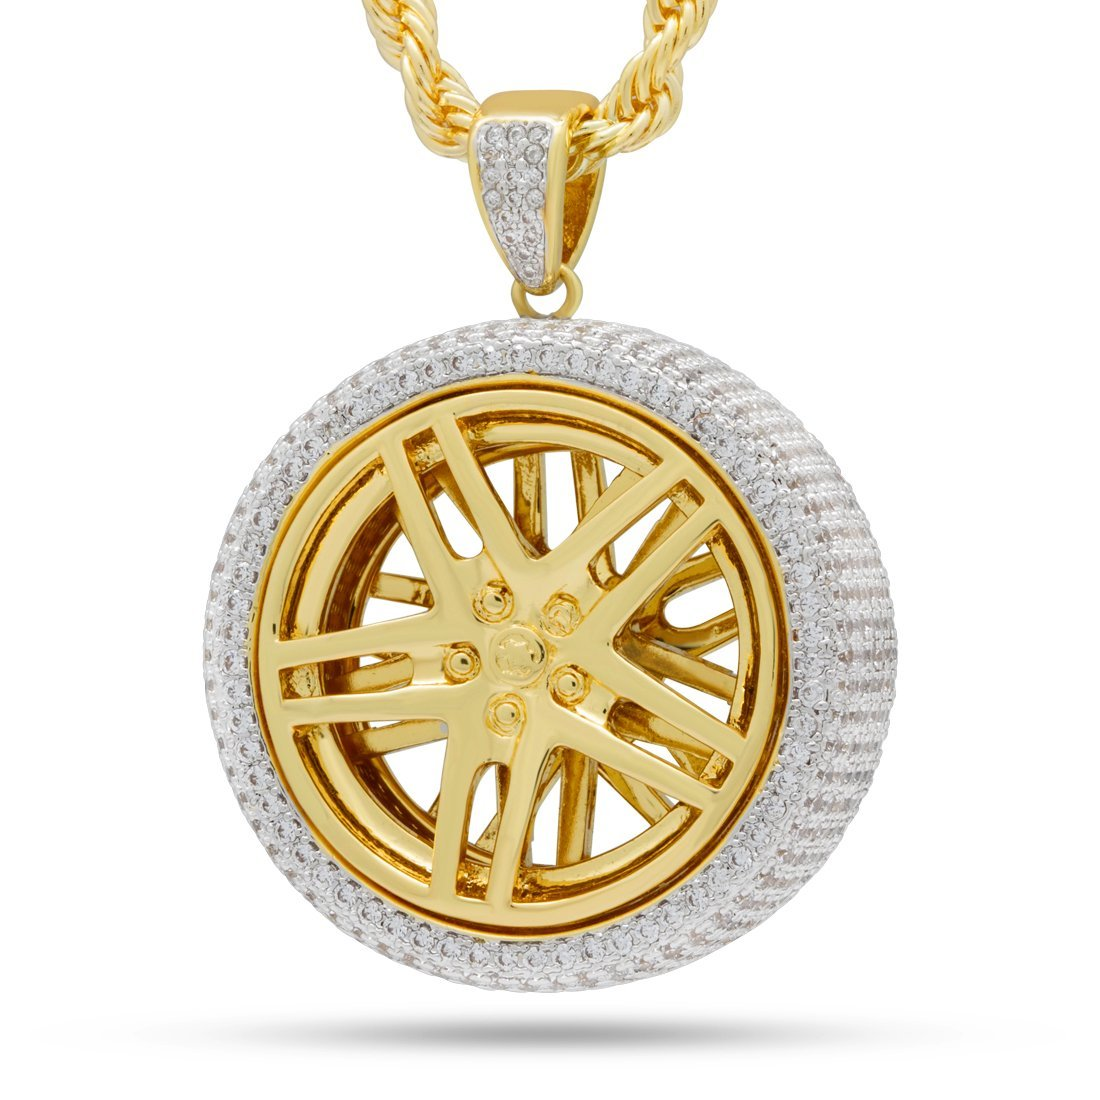 The Spinning Rims Necklace